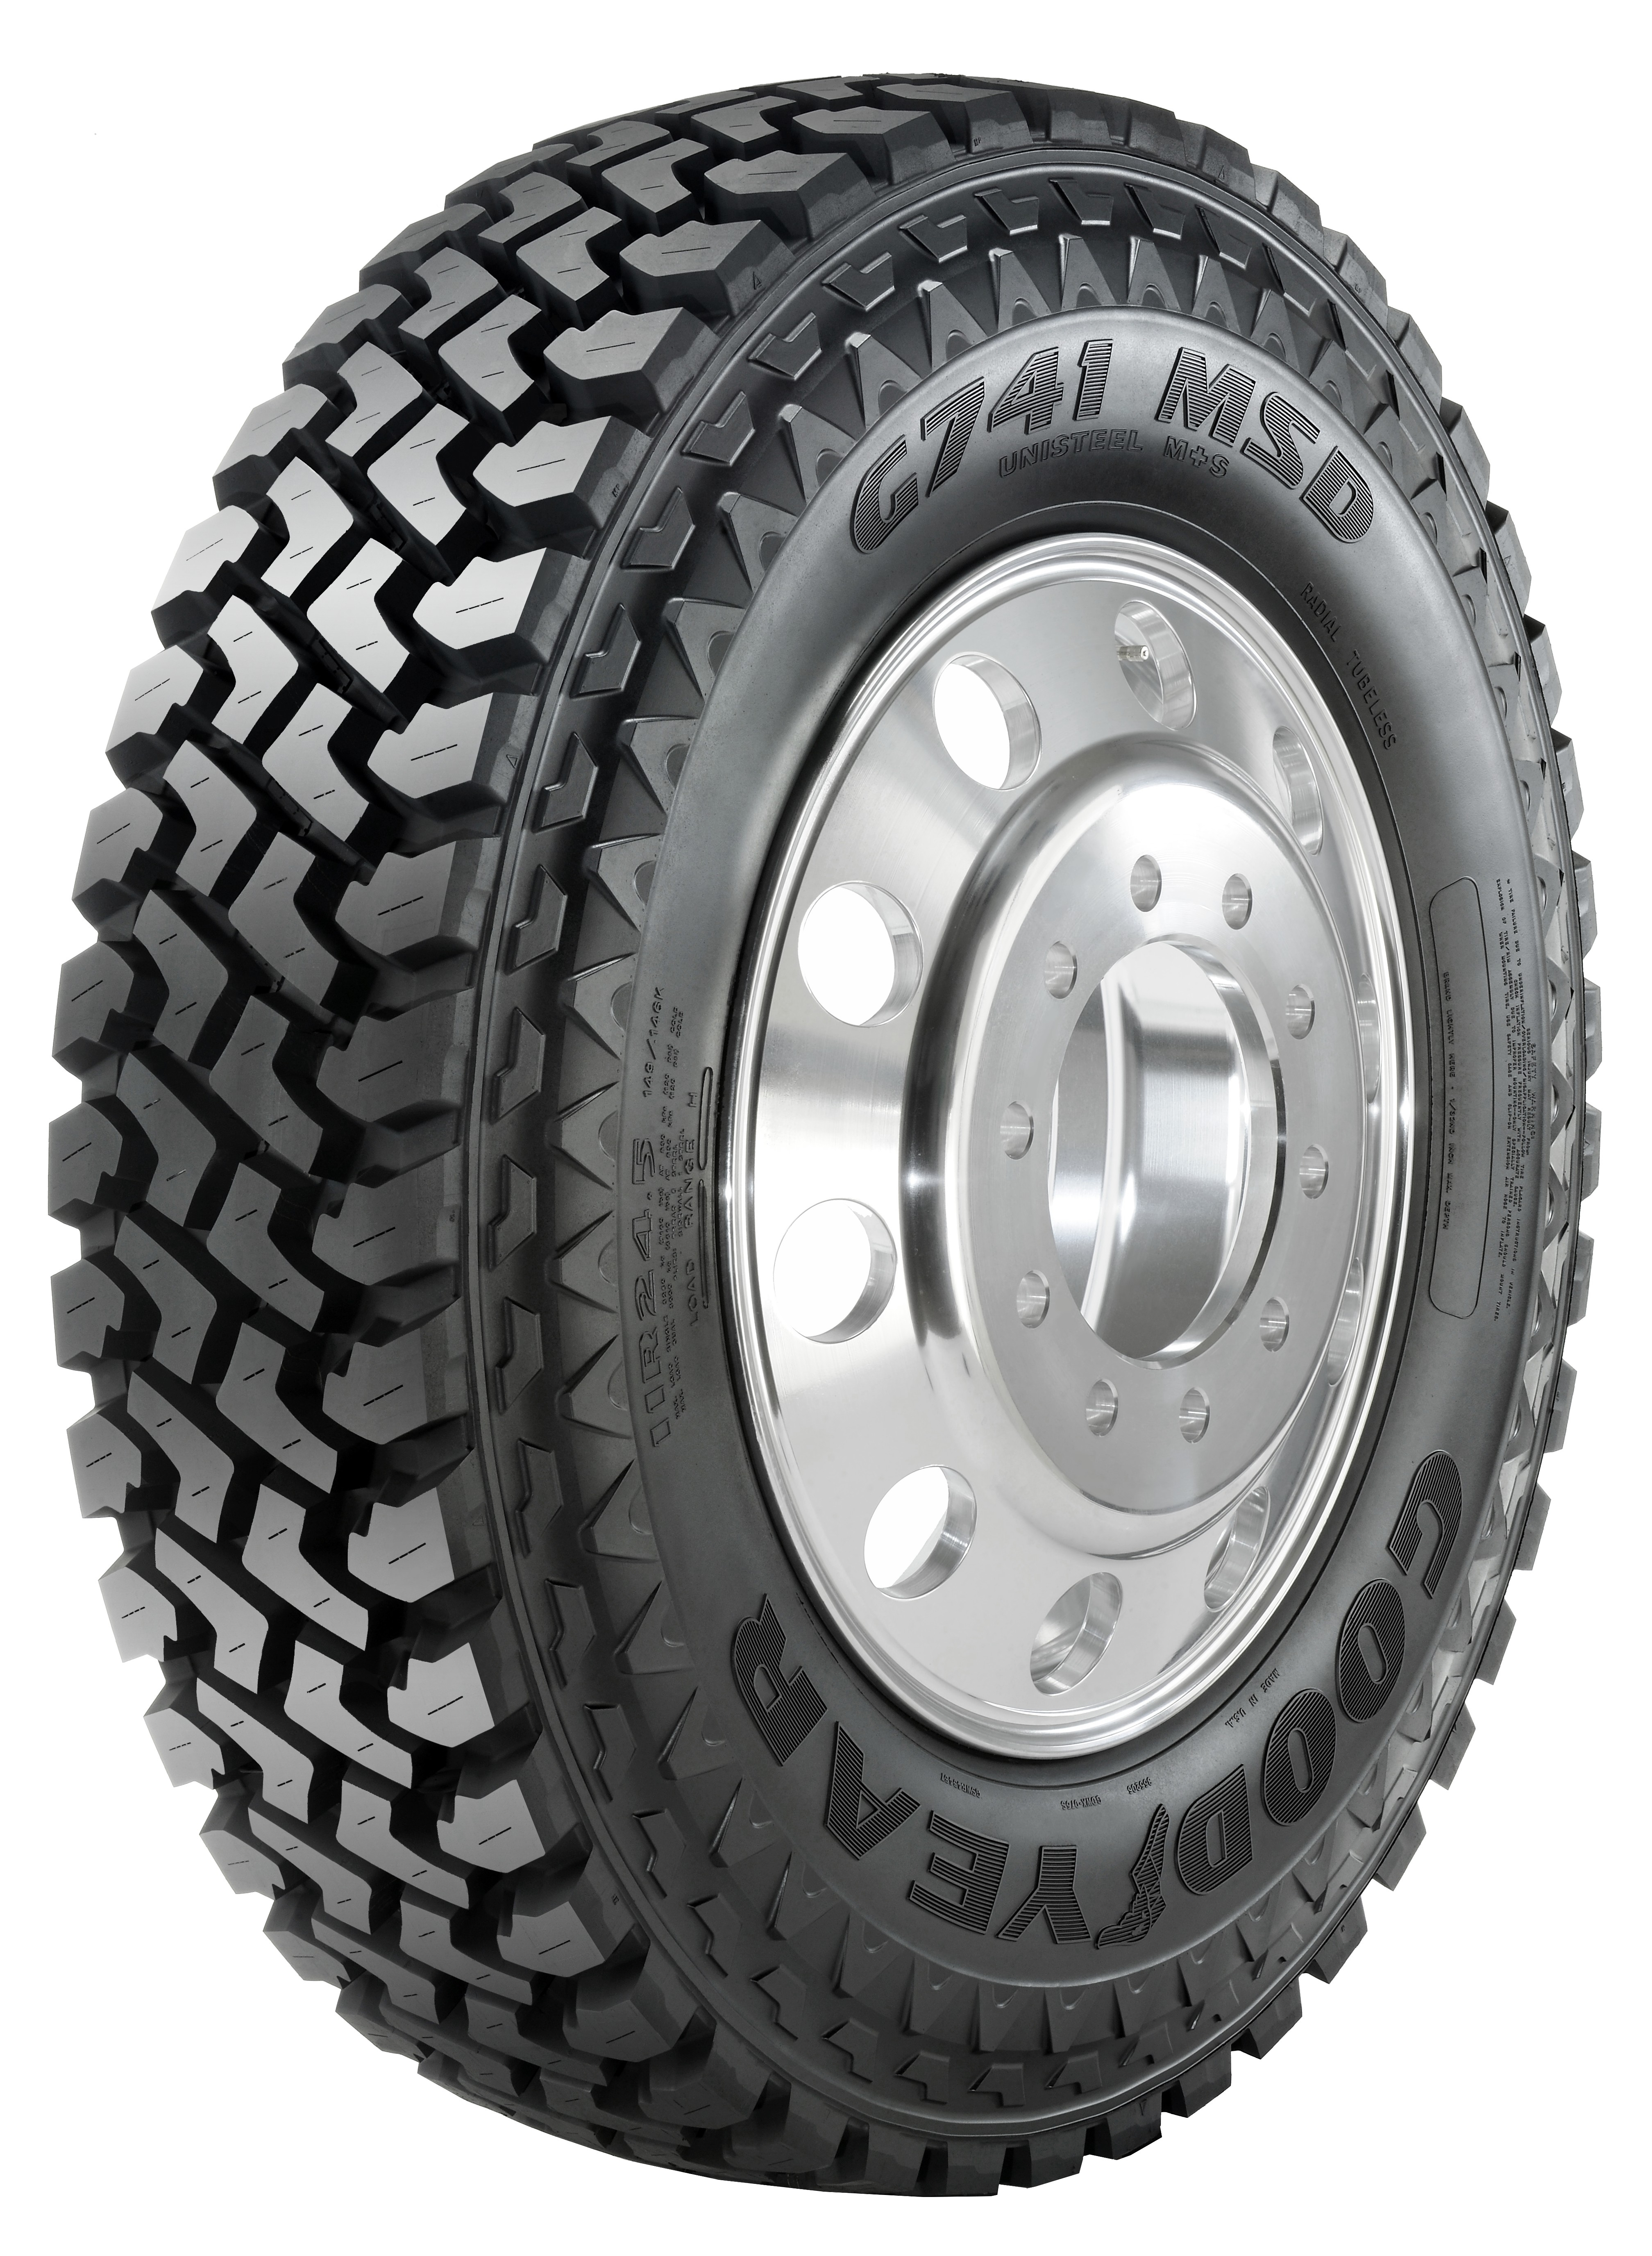 Goodyear Commercial Truck Tires image goodyear broadens g741 severe service tire line np goodyear 741